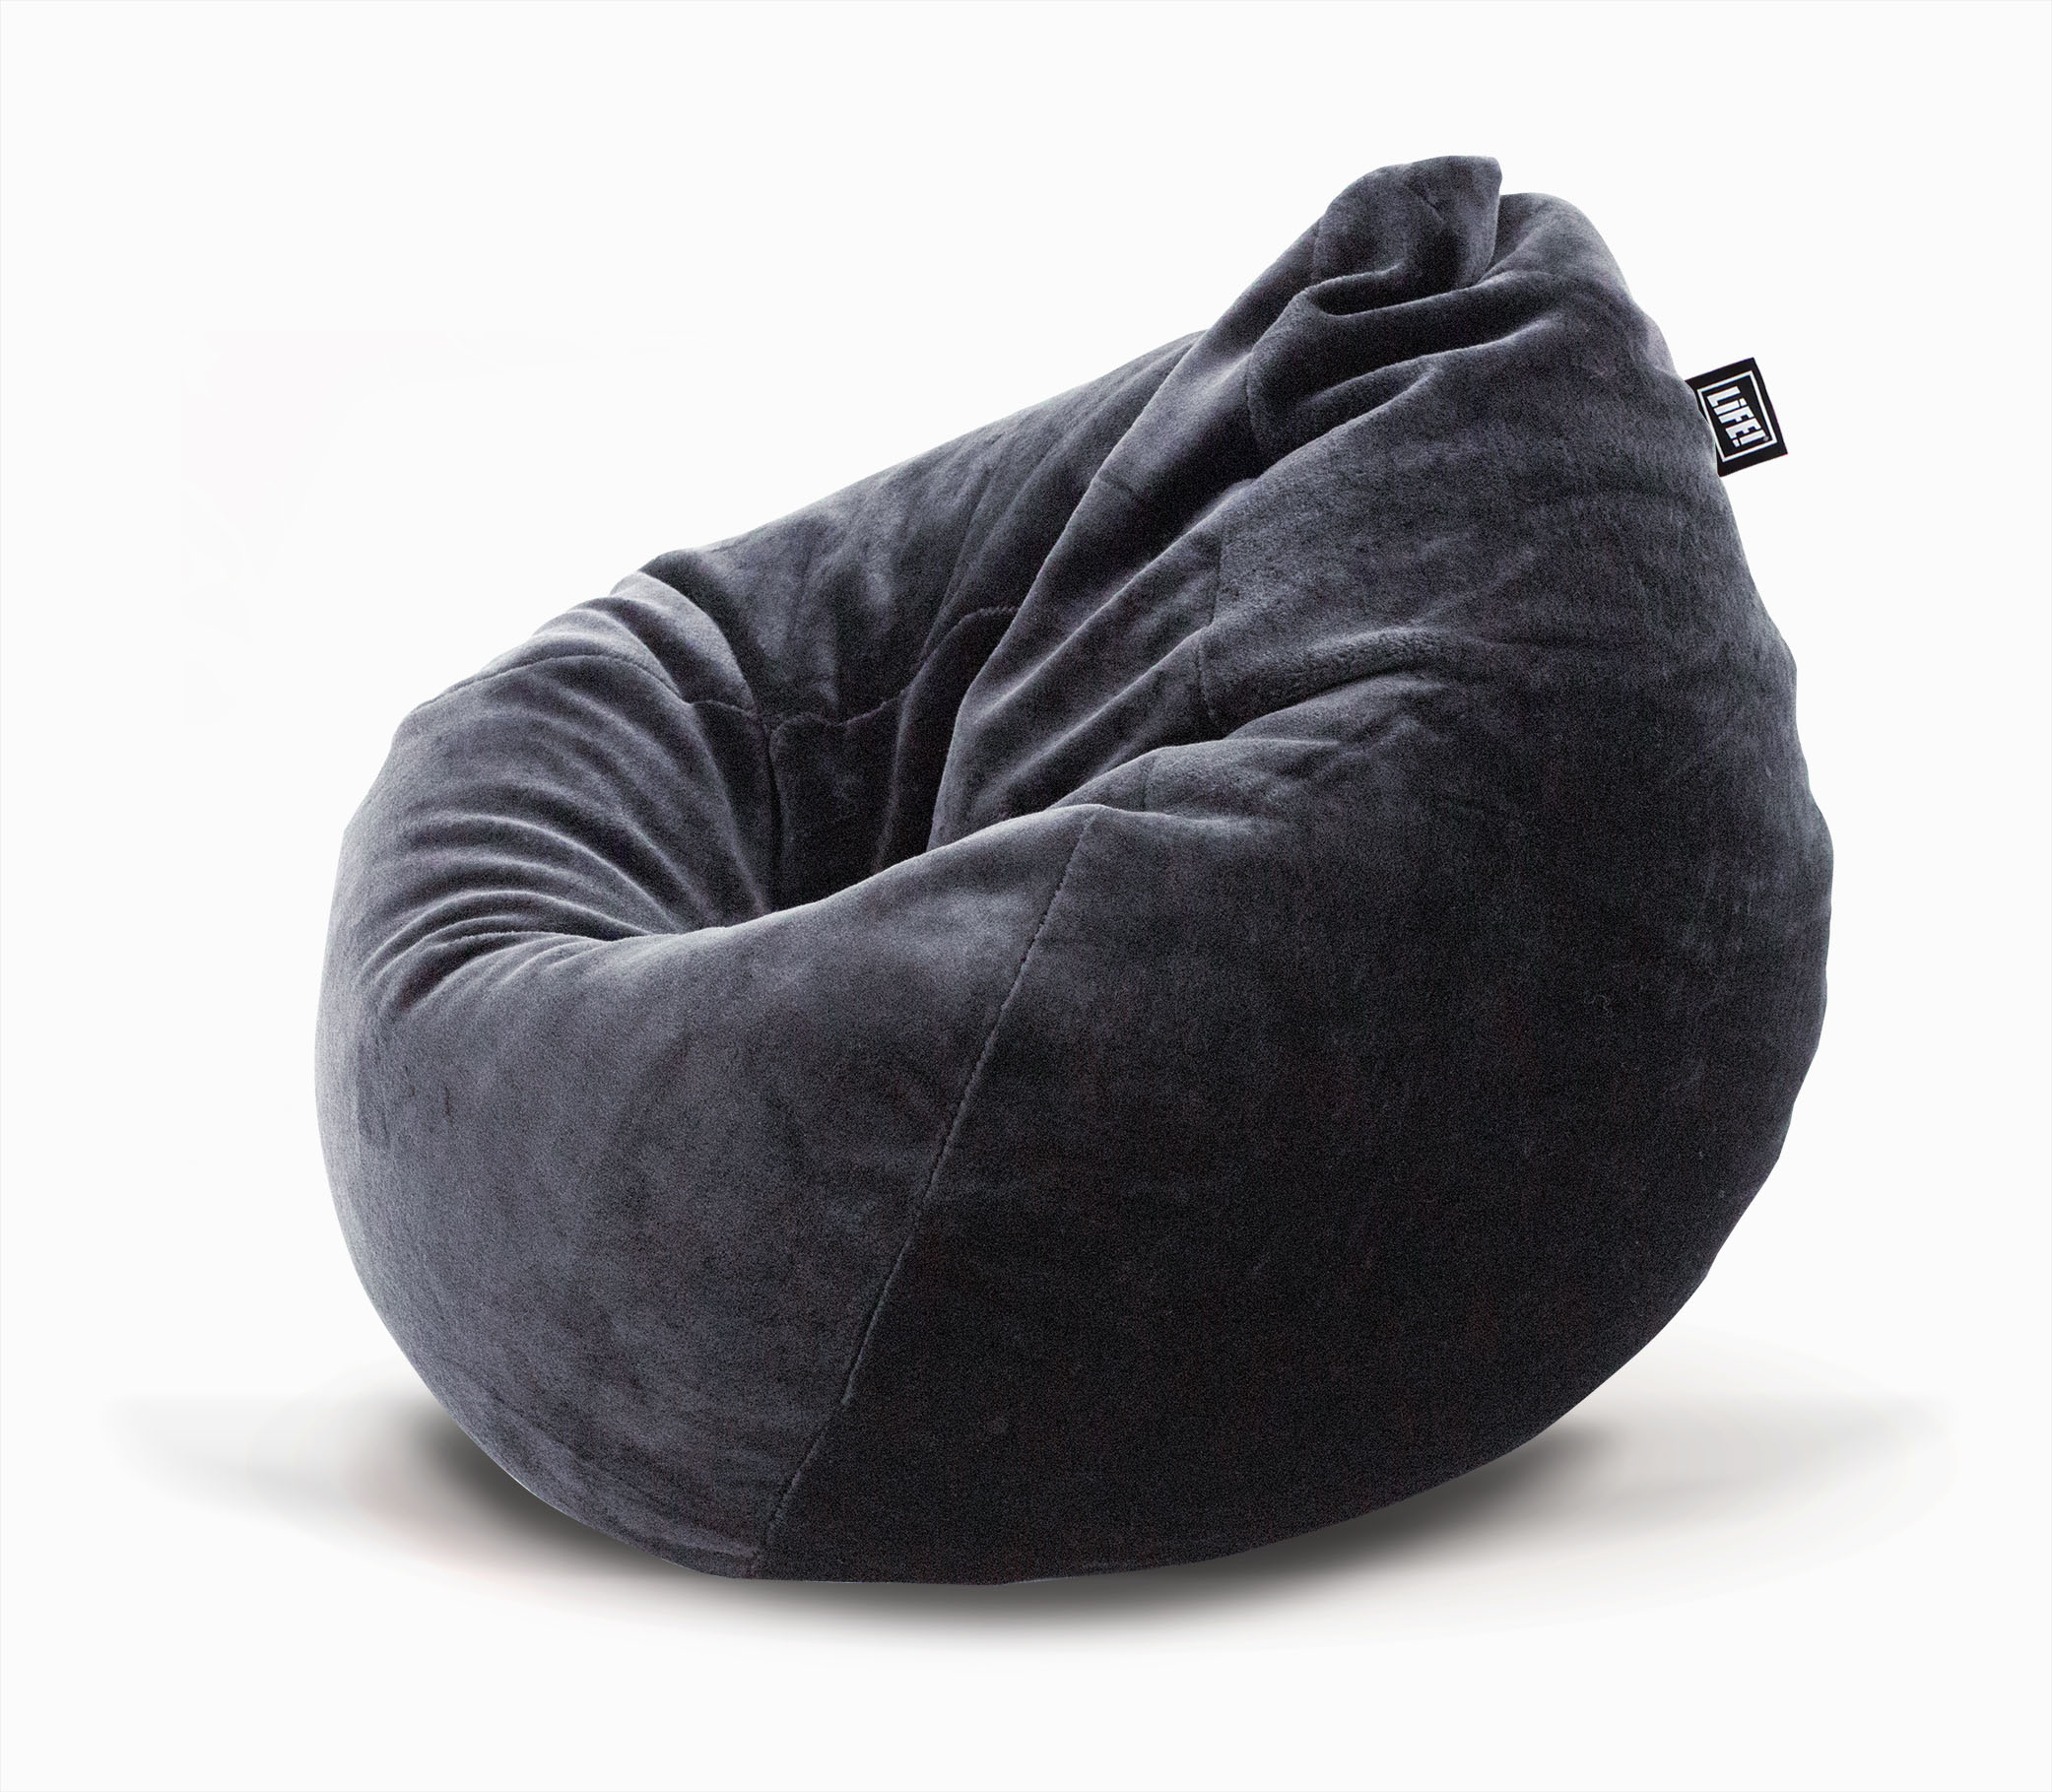 cnbhomes also Giant Stitch Plush likewise 84301824246923821 also Cheap Simple Bedroom Decorating Ideas To Inspire Your Dorm Room Interior in addition Product. on cute bean bag chairs